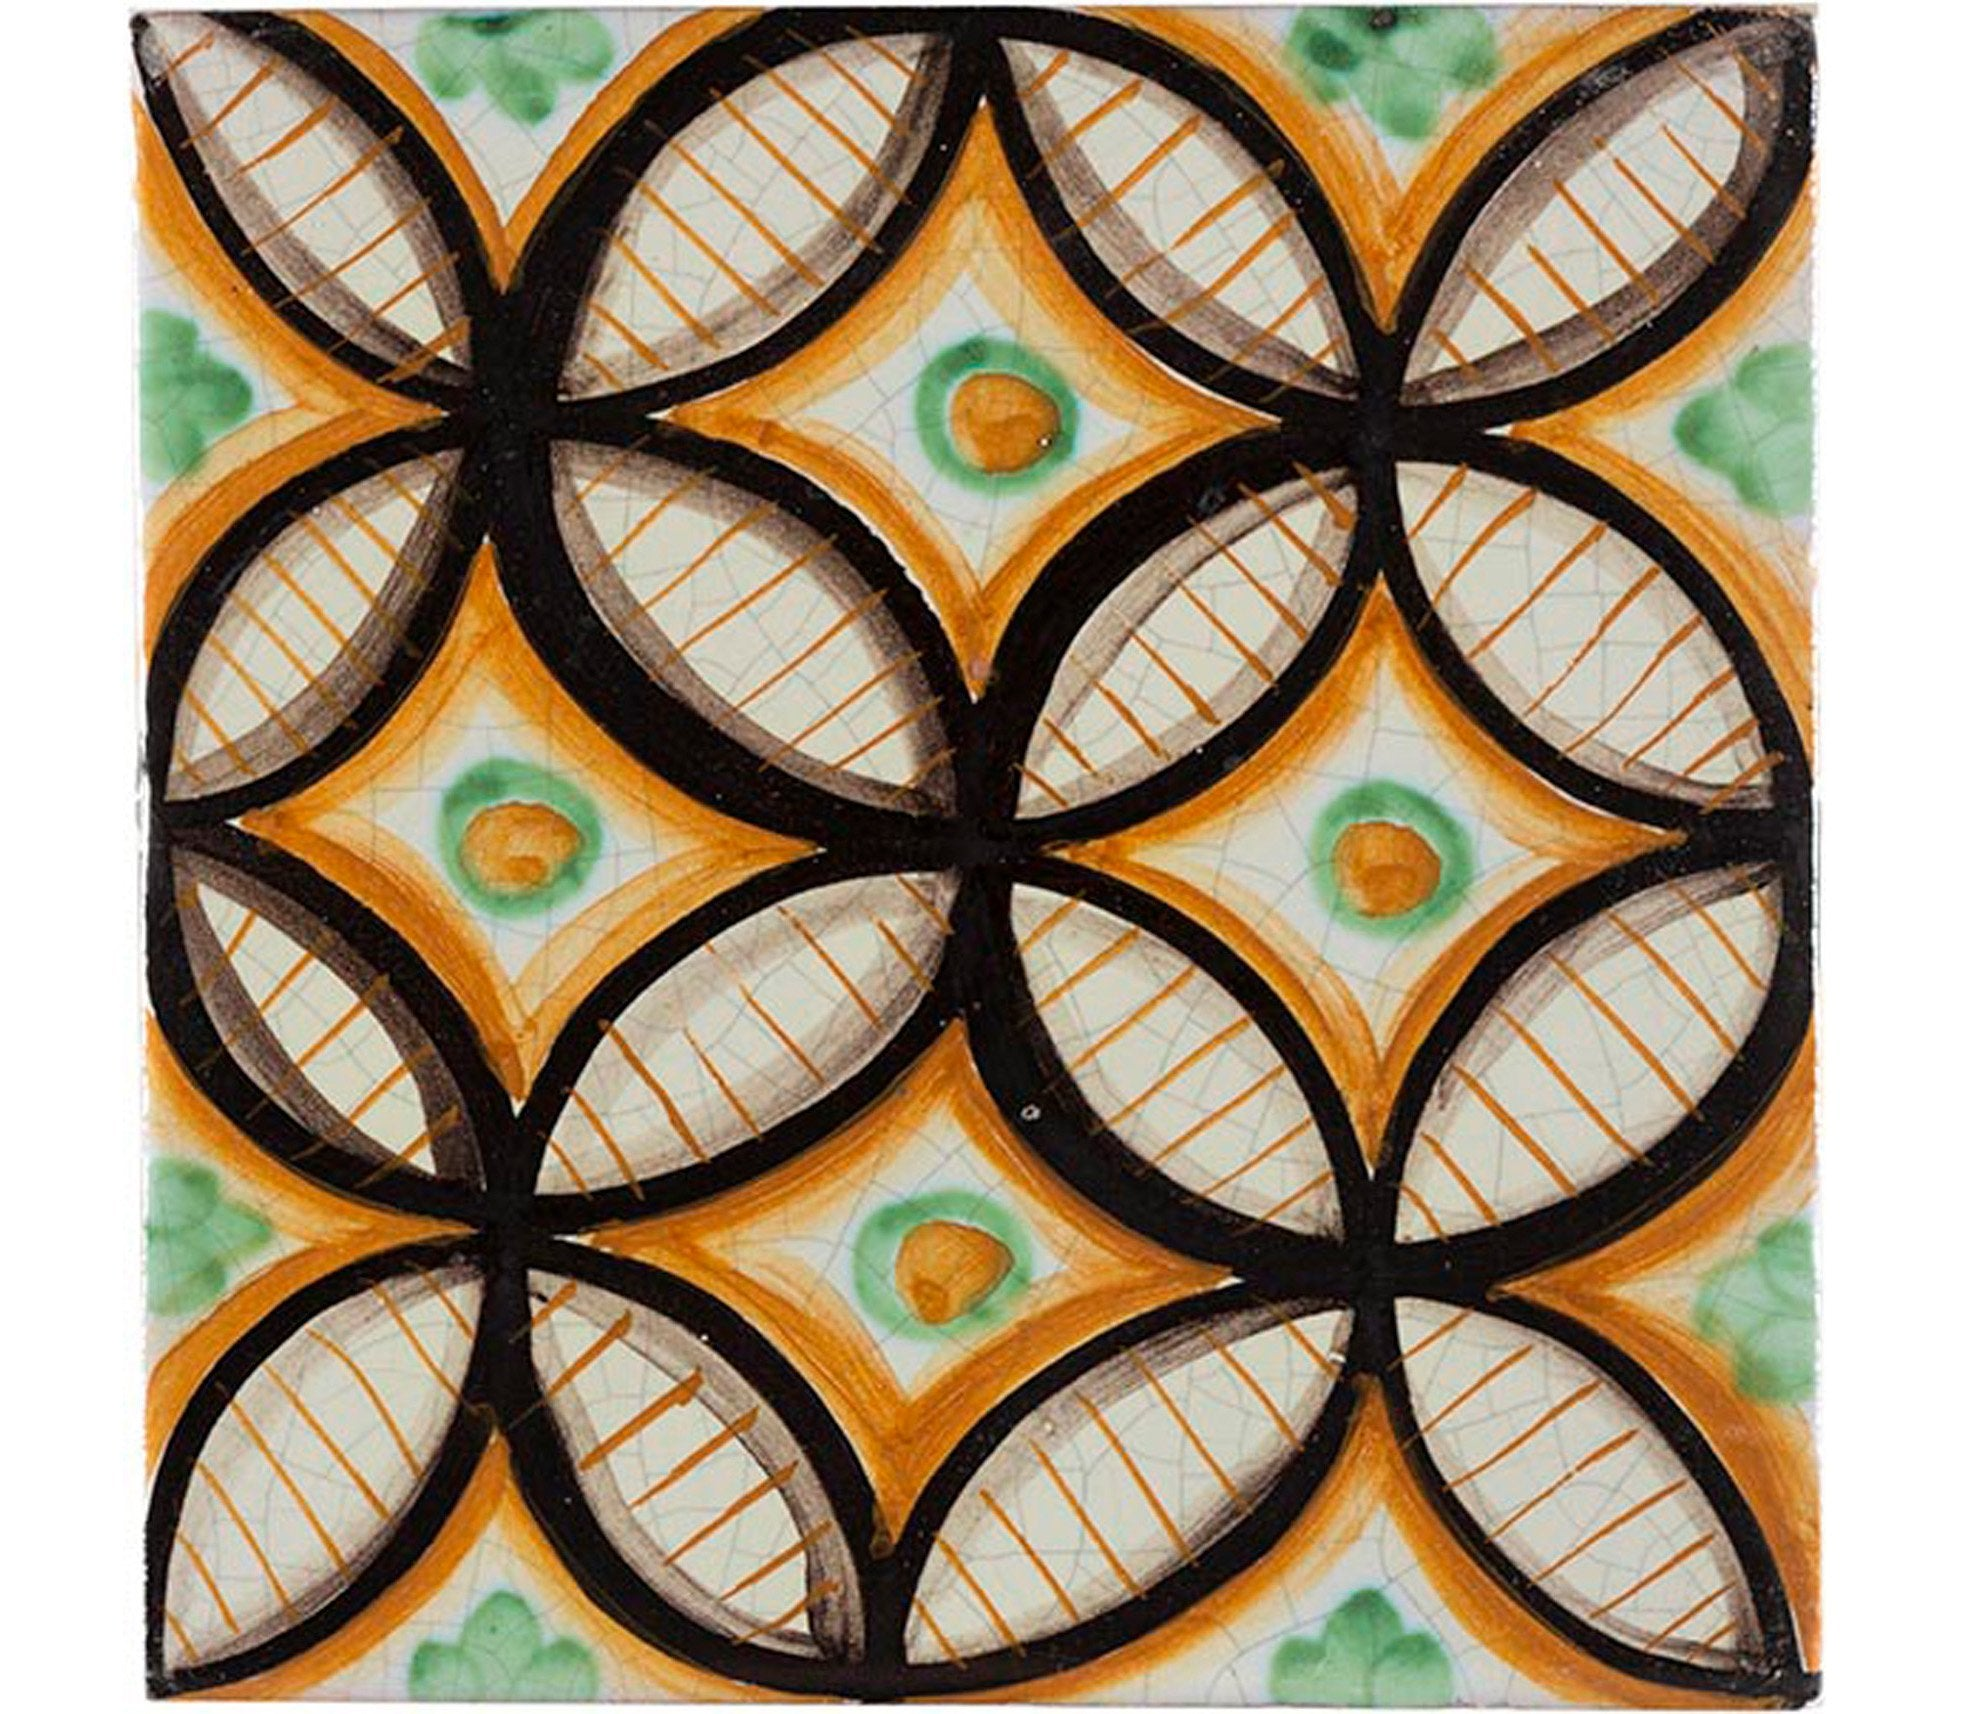 Series S Handpainted Tiles Product Image 47